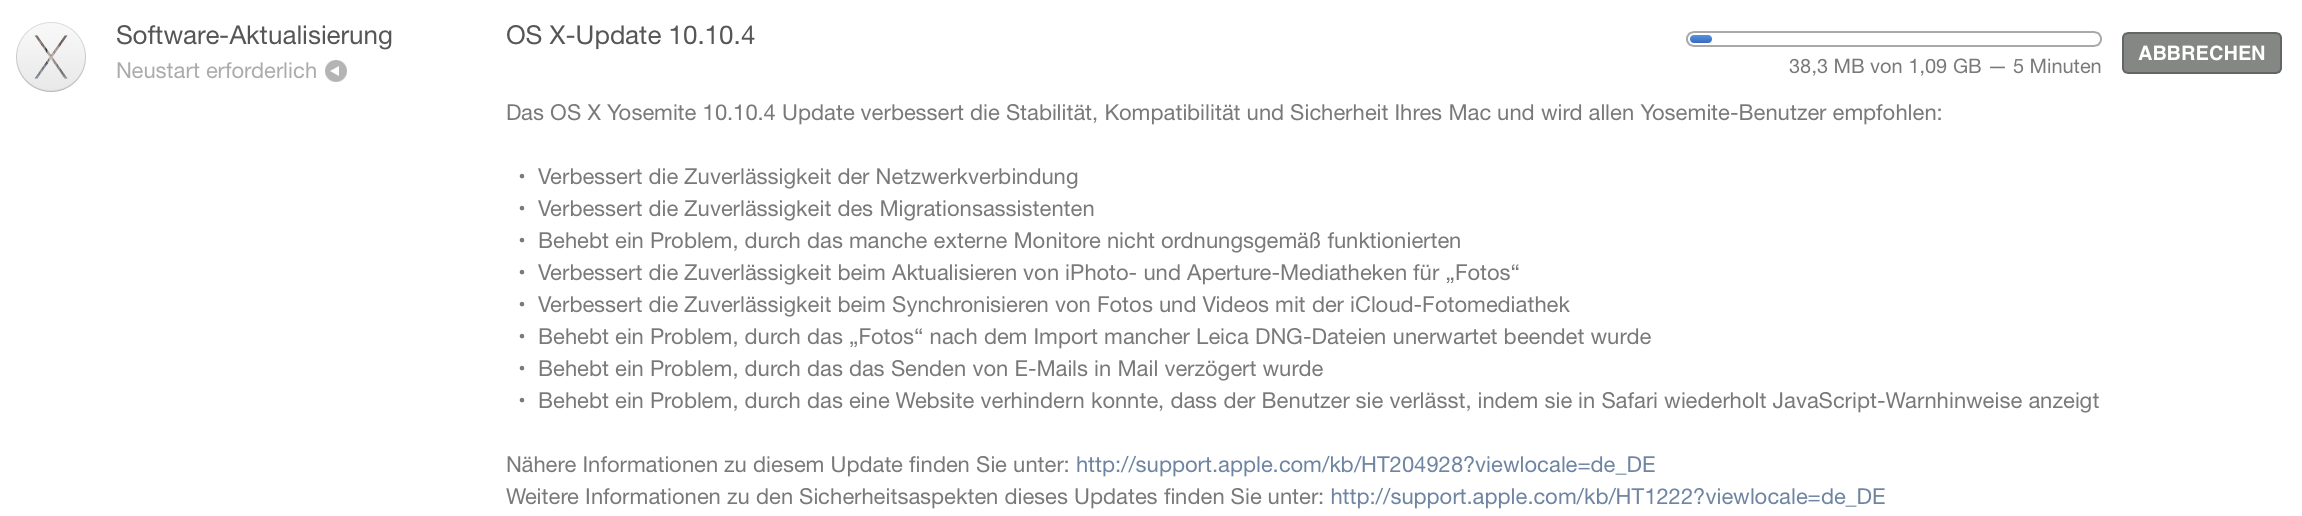 macOS Update Topic-bildschirmfoto-2015-06-30-um-17.19.30.png